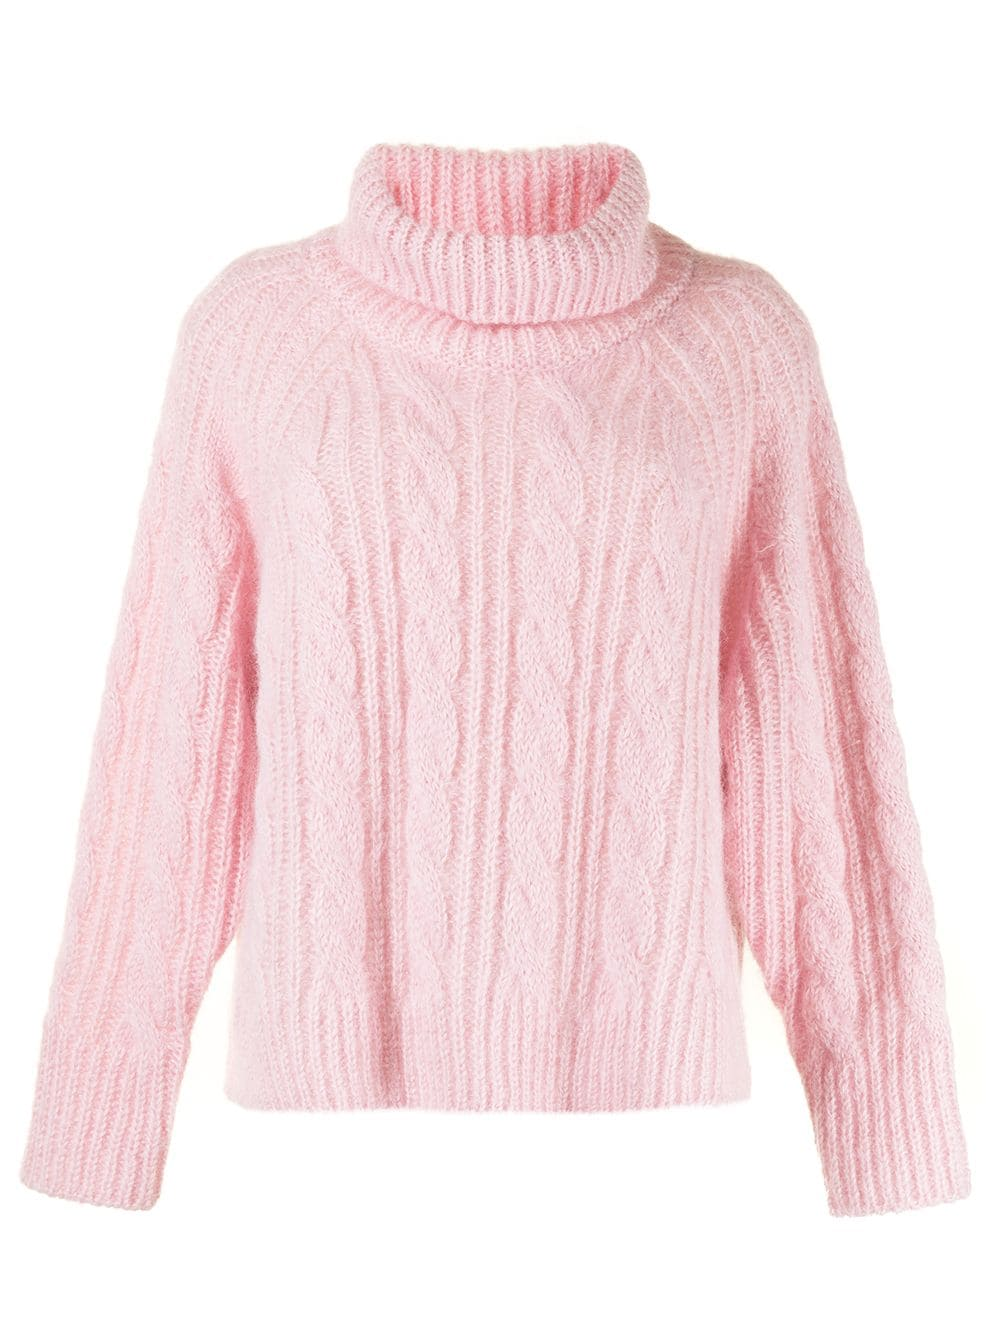 Cecilie Bahnsen Pullover mit Zopfmuster - Rosa